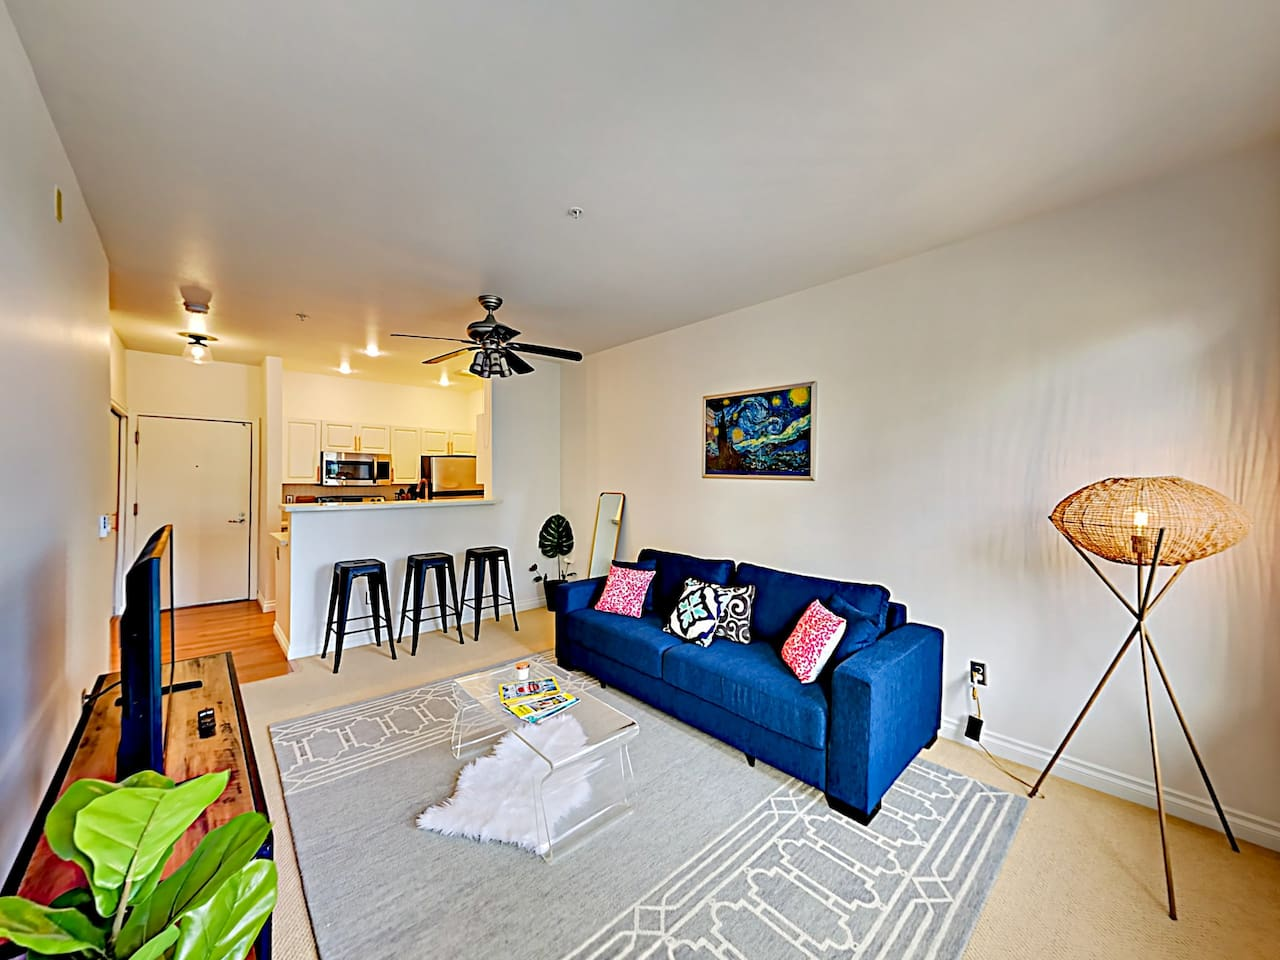 Welcome to Seattle! This condo is professionally managed by TurnKey Vacation Rentals.